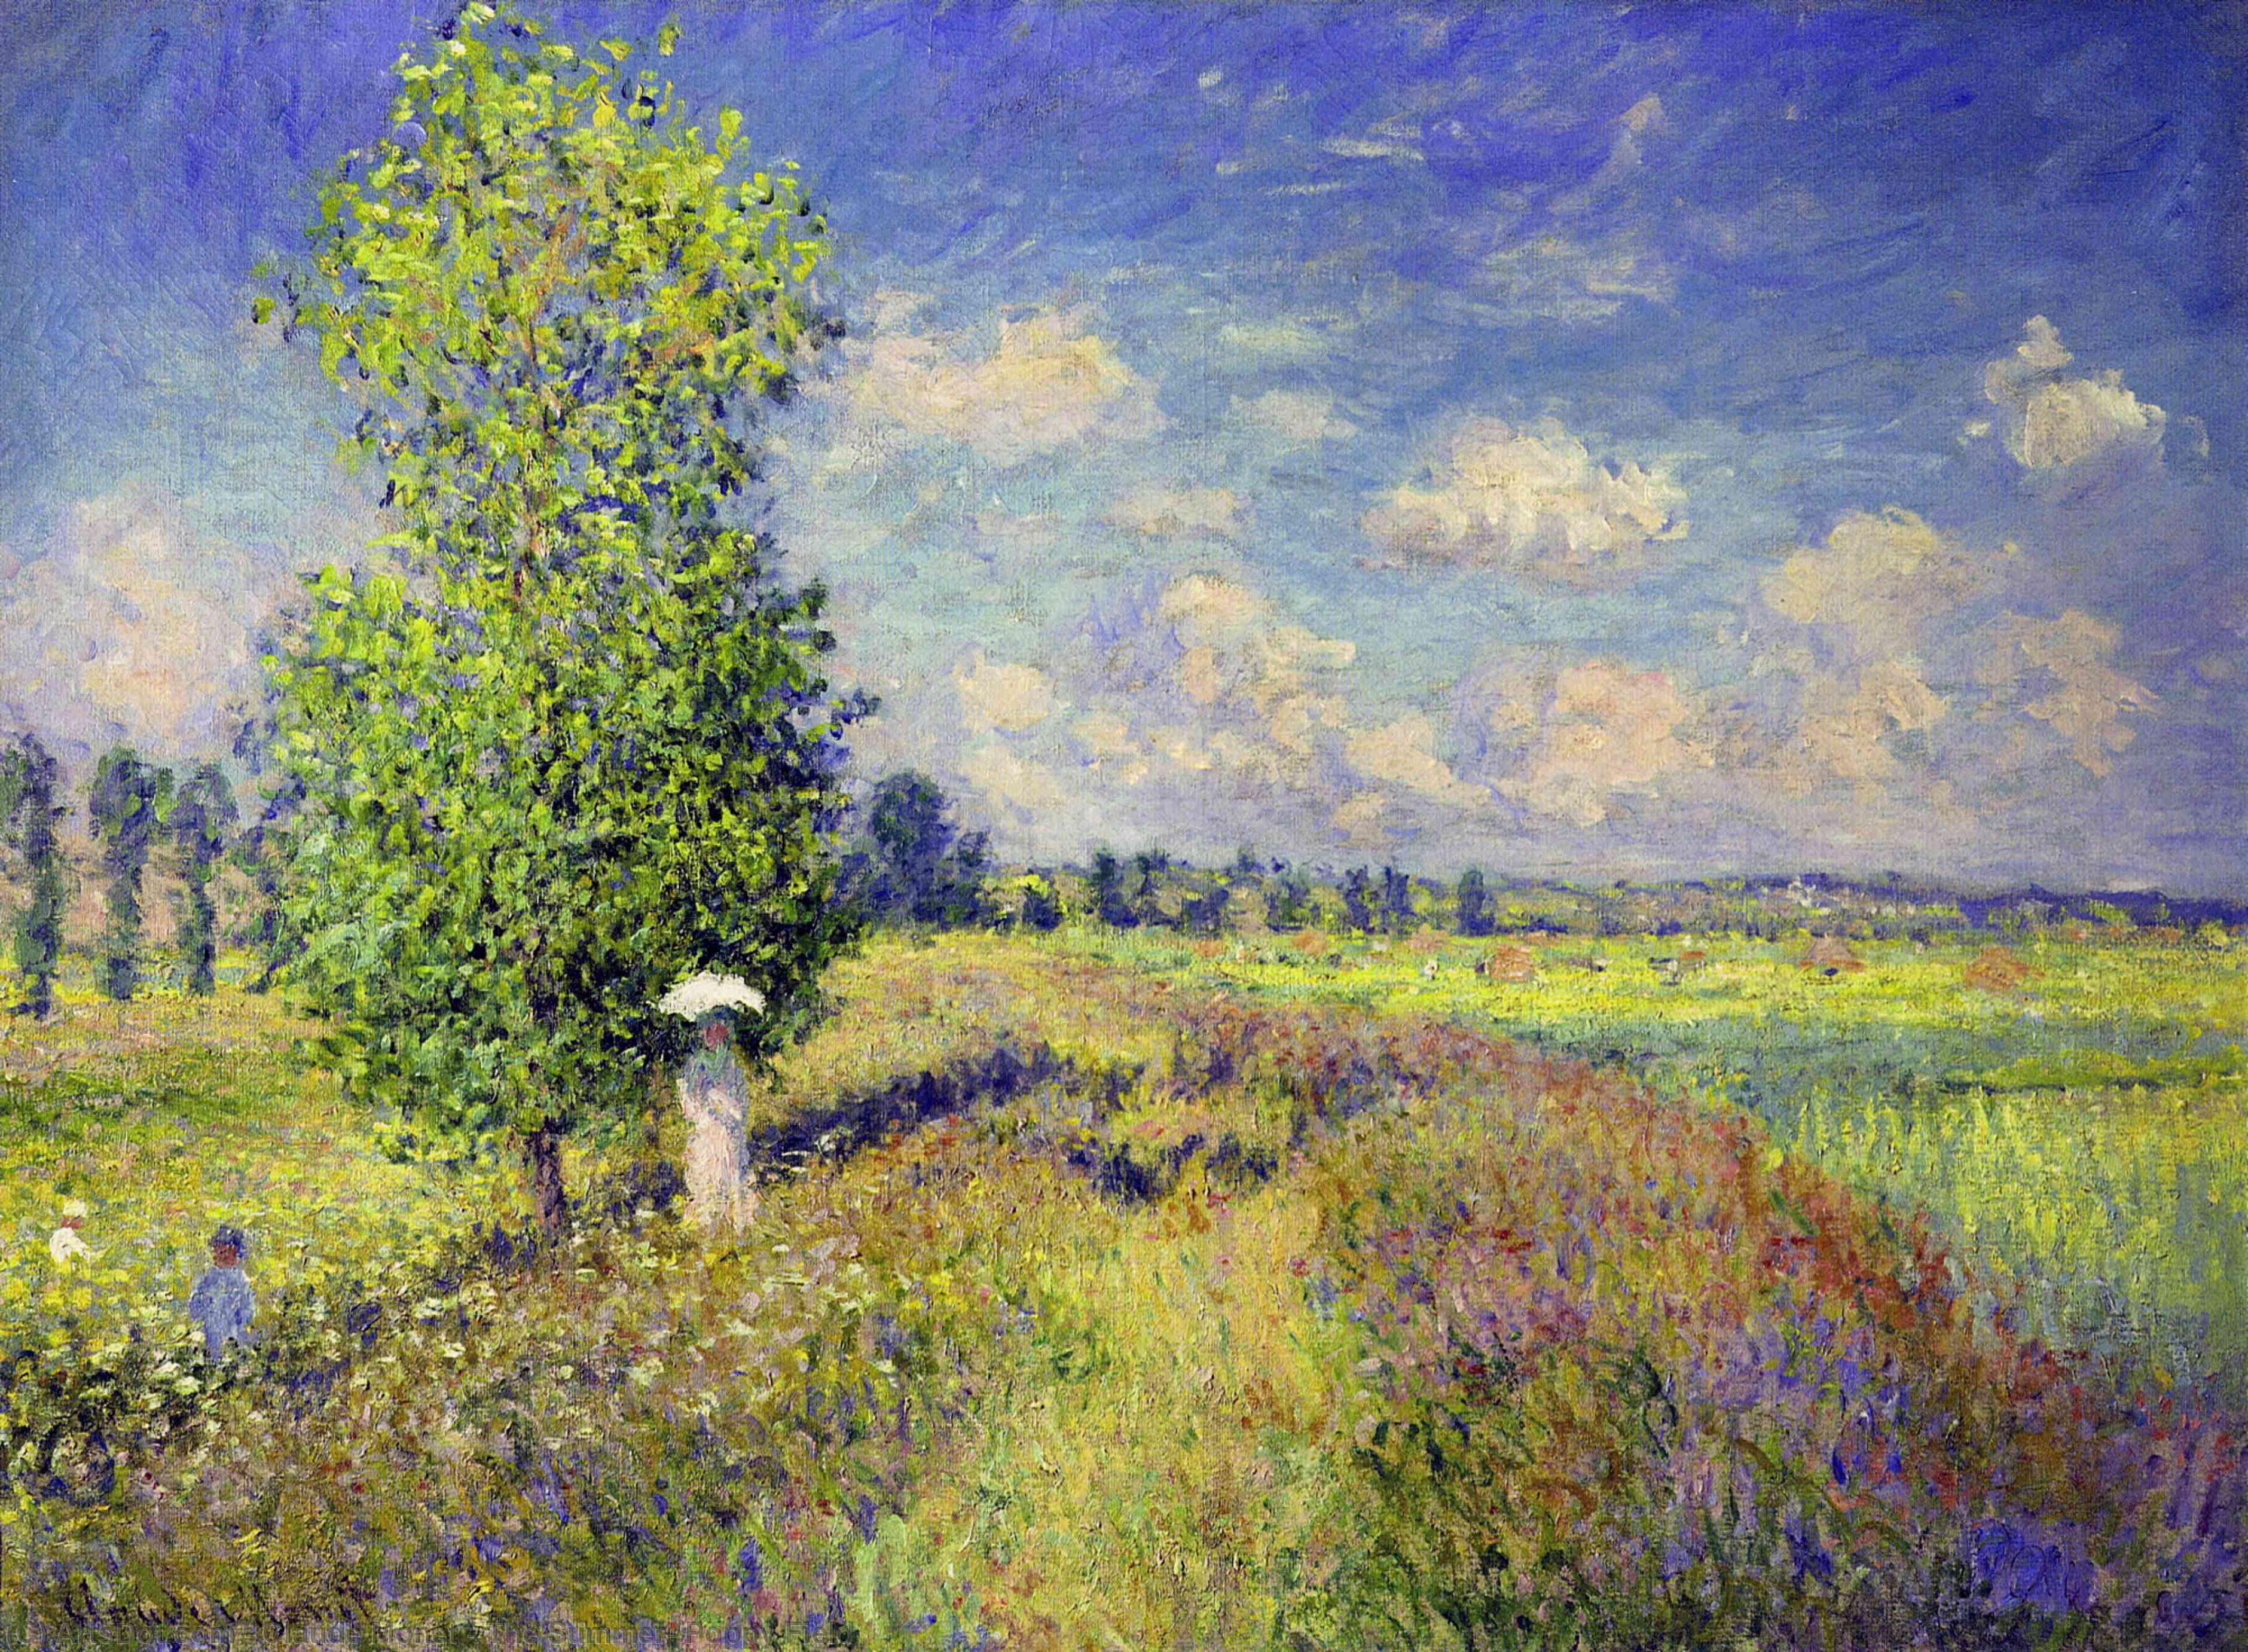 Wikioo.org - The Encyclopedia of Fine Arts - Painting, Artwork by Claude Monet - The Summer, Poppy Field